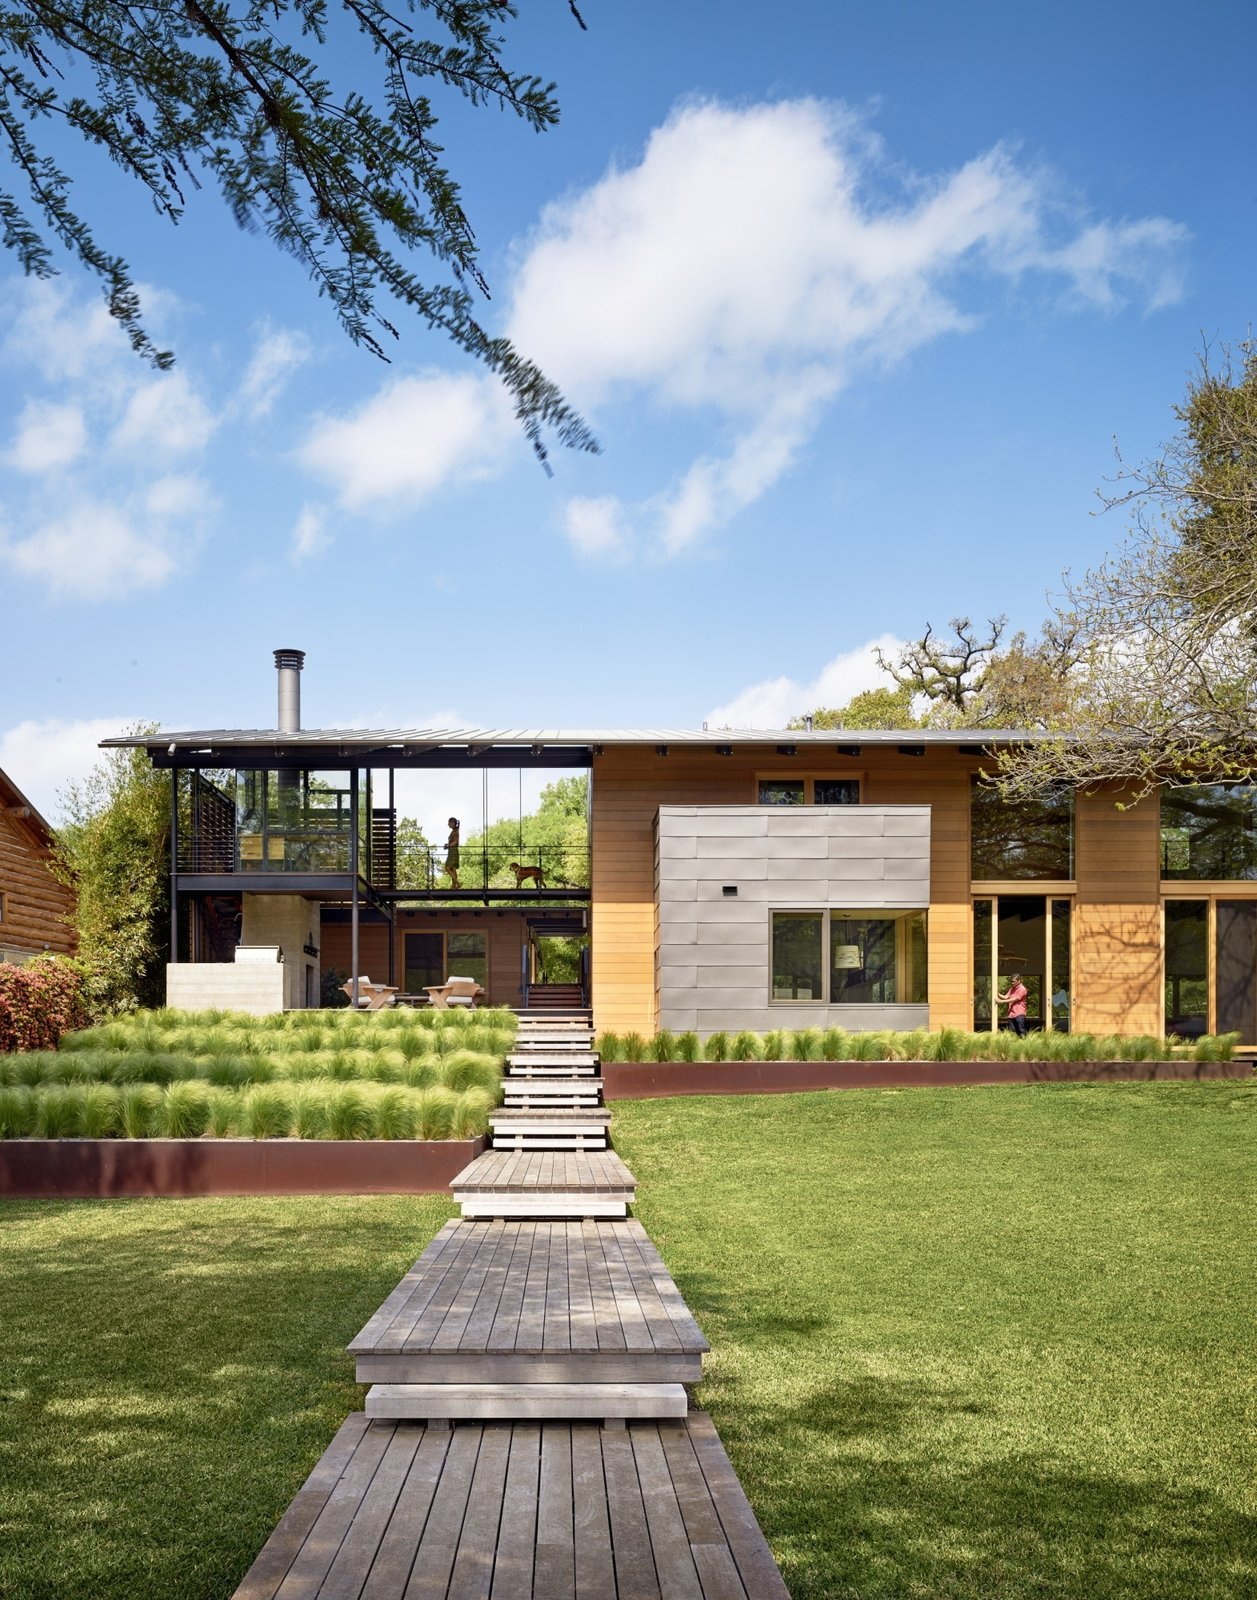 """Exterior, House Building Type, Flat RoofLine, and Wood Siding Material """"Consistent with the lakefront cabin charm, the owners liked the idea of accessing much of the house from outdoor porches and walkways,"""" says architect Ted Flato. Supplies from Dynamic Architectural Windows and Doors bring light in to the home's covered spaces.  Hog Pen Creek by Kelly Dawson"""